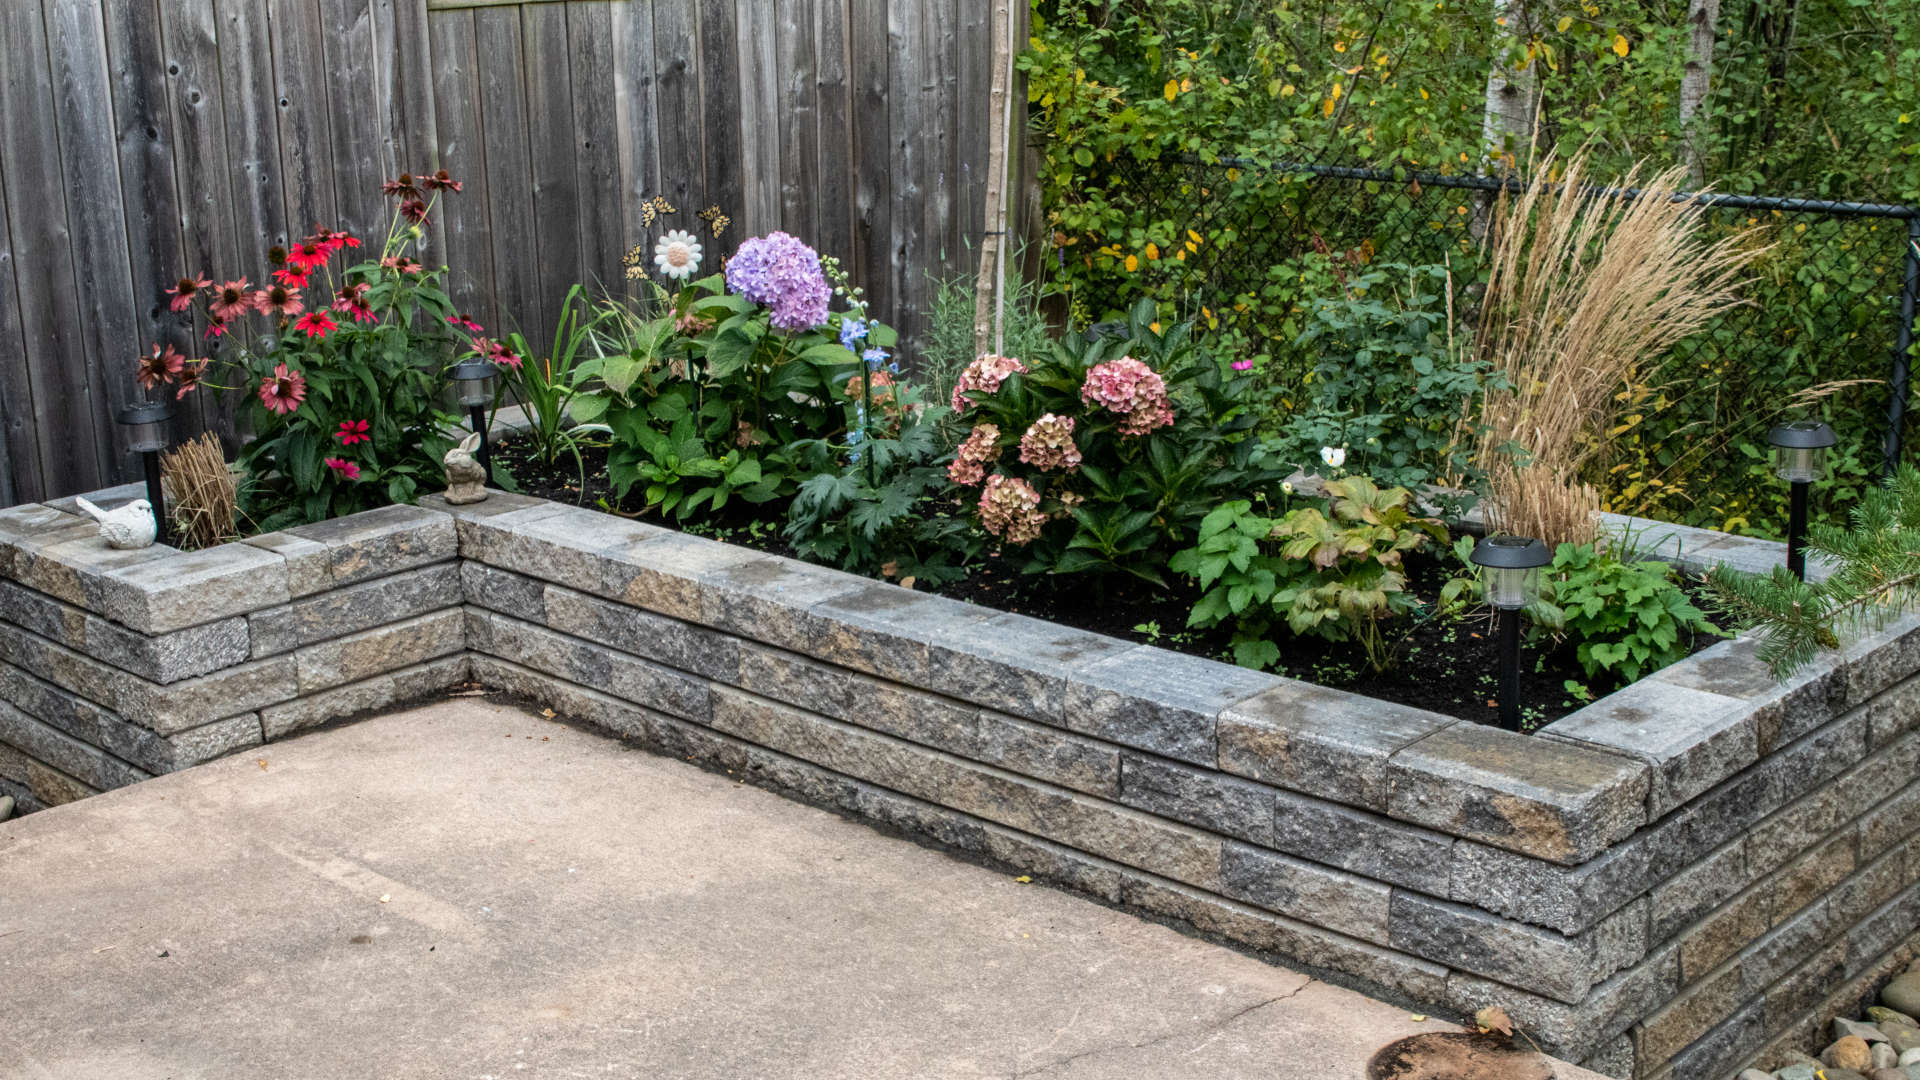 Landscaping, hardscaping and stonework project London Ontario. Stone retaining wall flower bed.